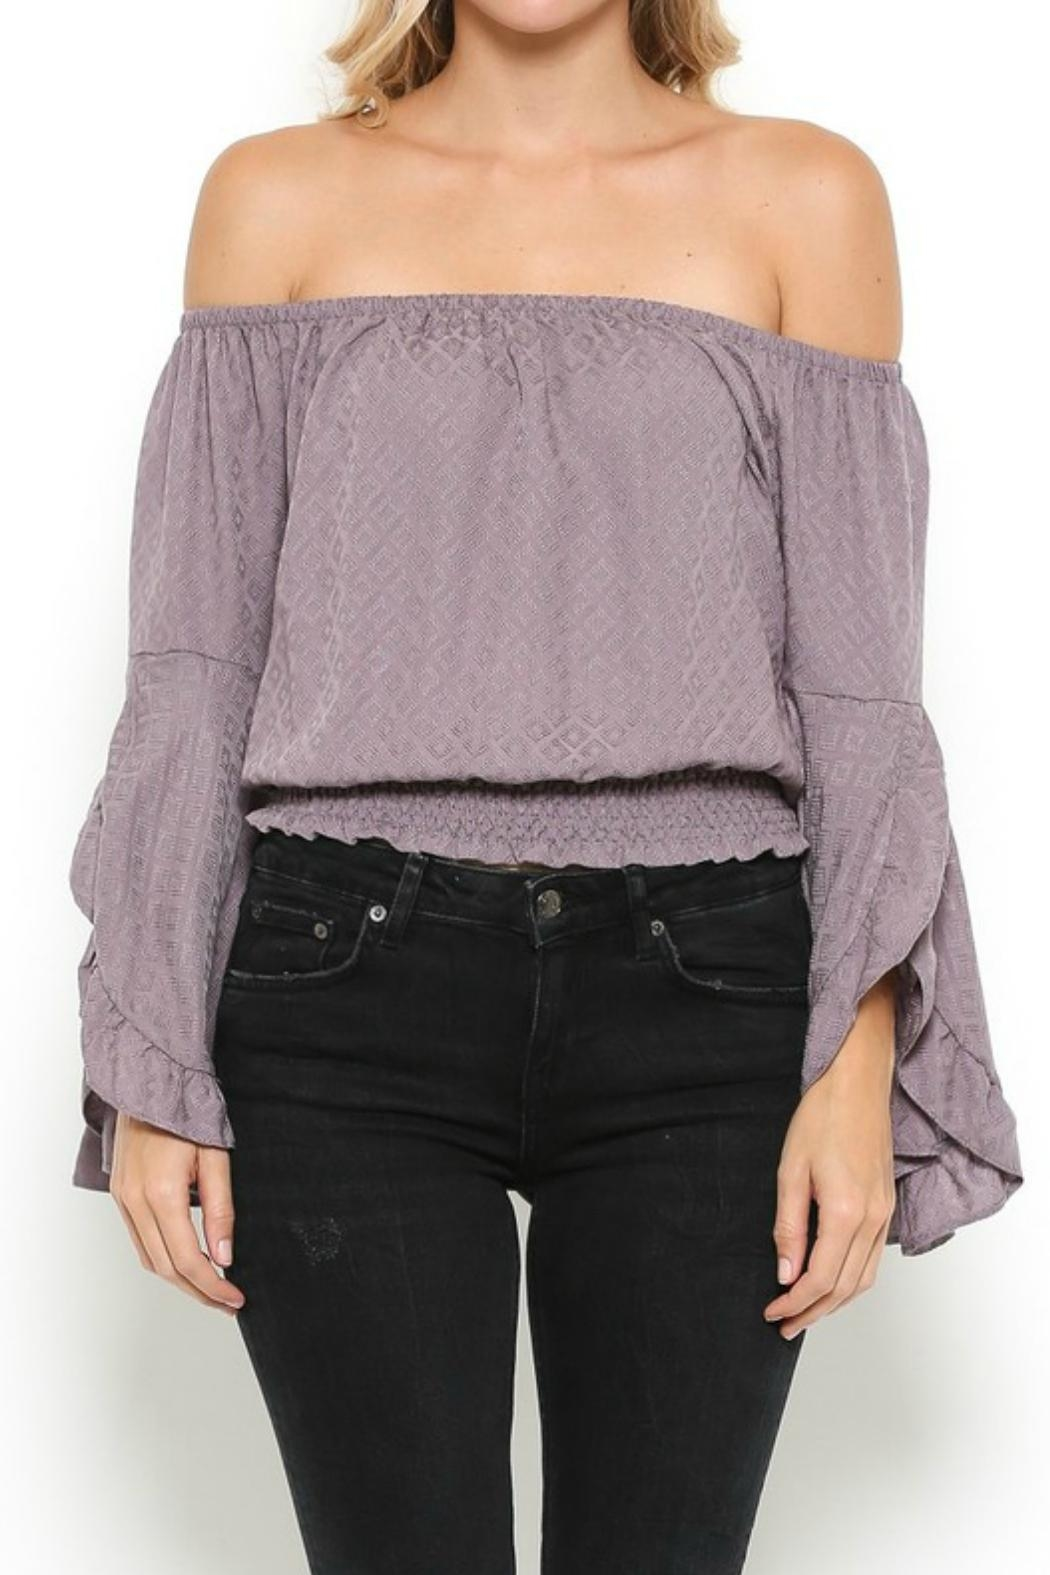 Illa Illa Lavender Off-The-Shoulder Top - Back Cropped Image